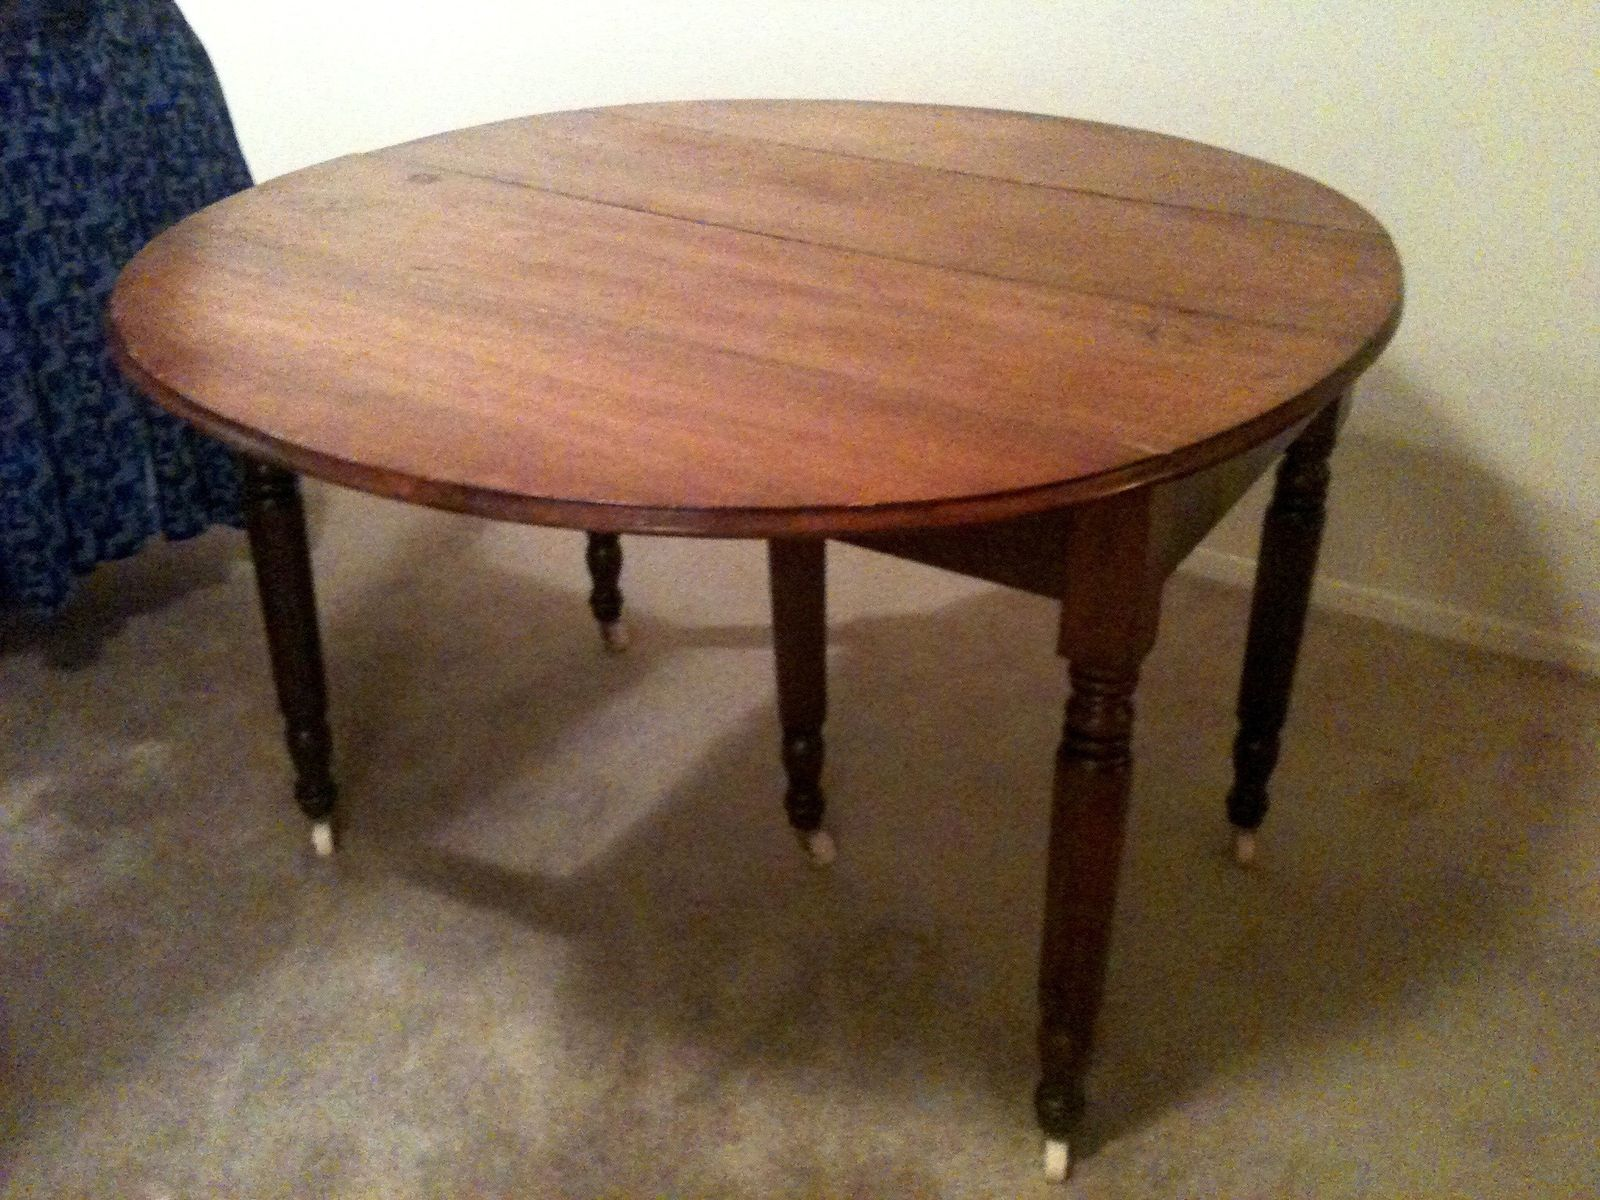 Building A Dining Room Table With Leaves Custom Replacement Of Five 5 Table Leaves To A Family